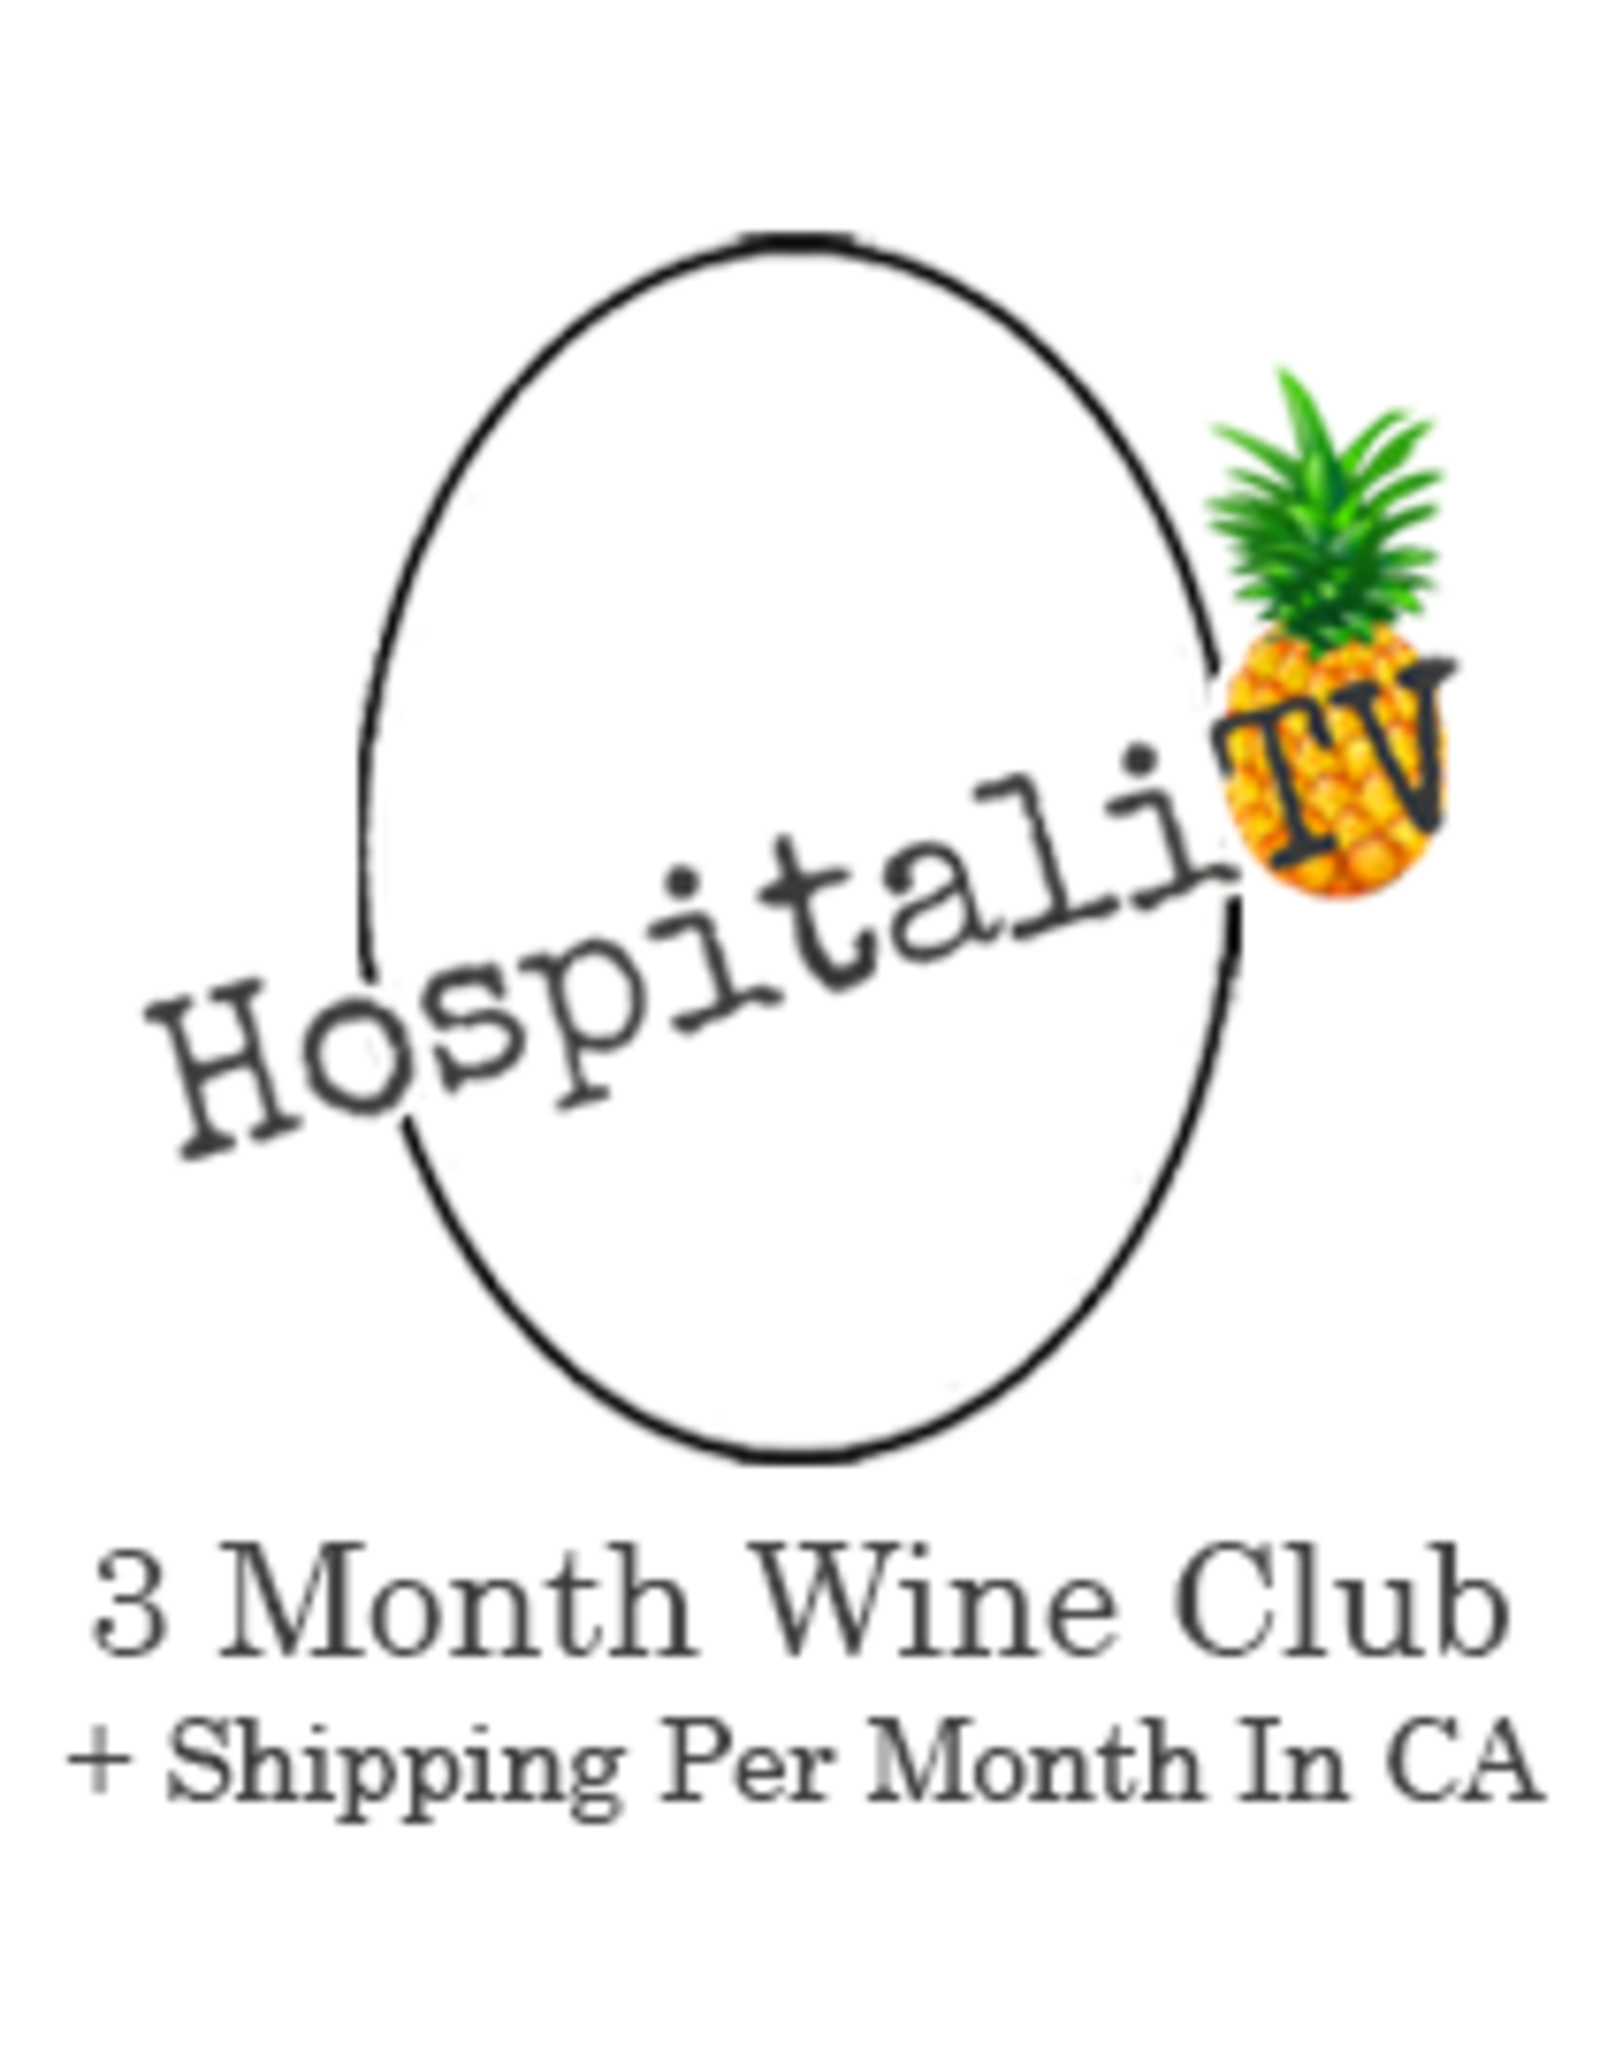 HospitaliTV Wine Club 3 Month plus CA shipping